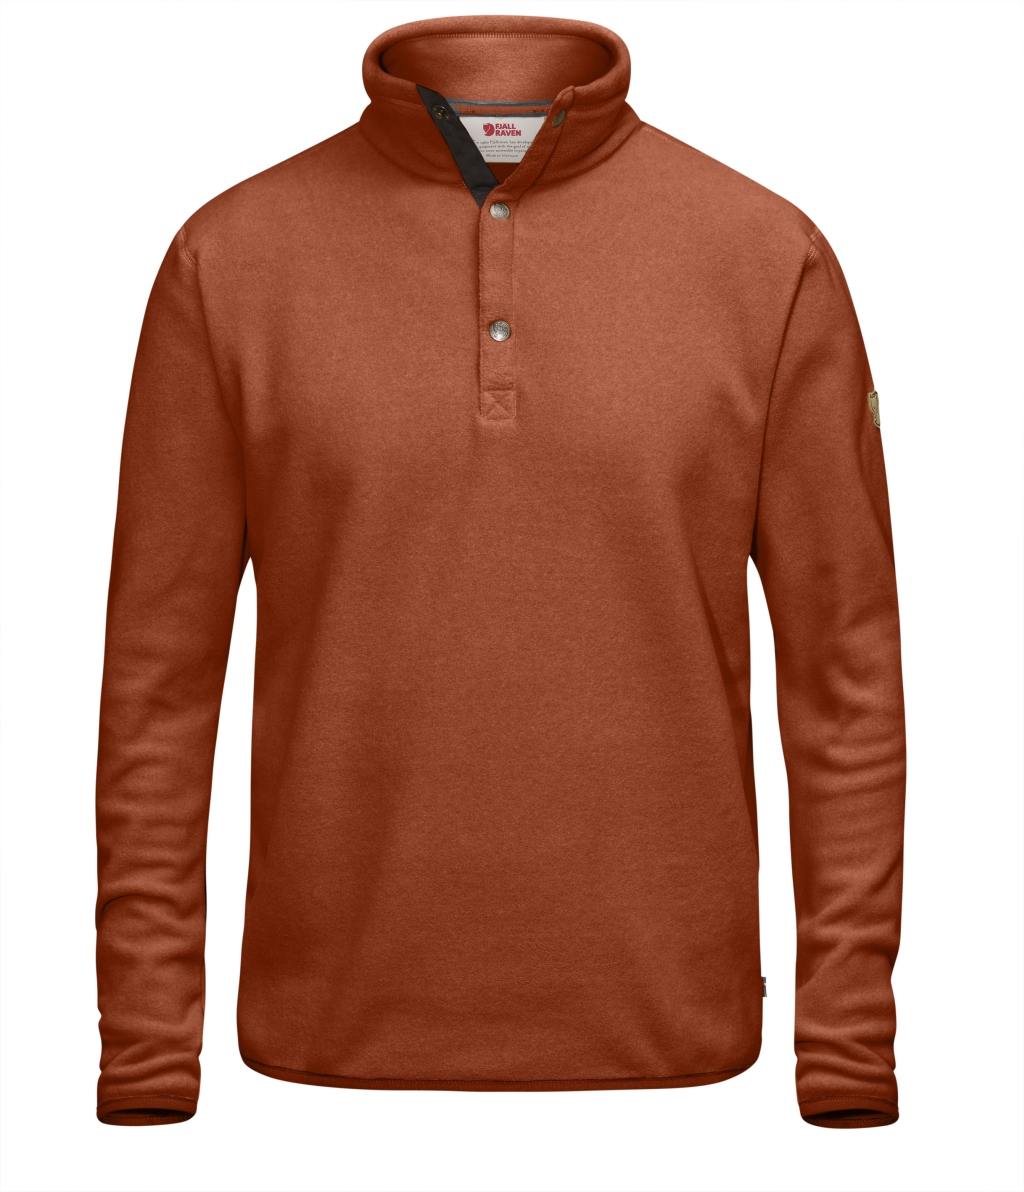 FjallRaven Ovik Fleece Sweater Autumn Leaf-30